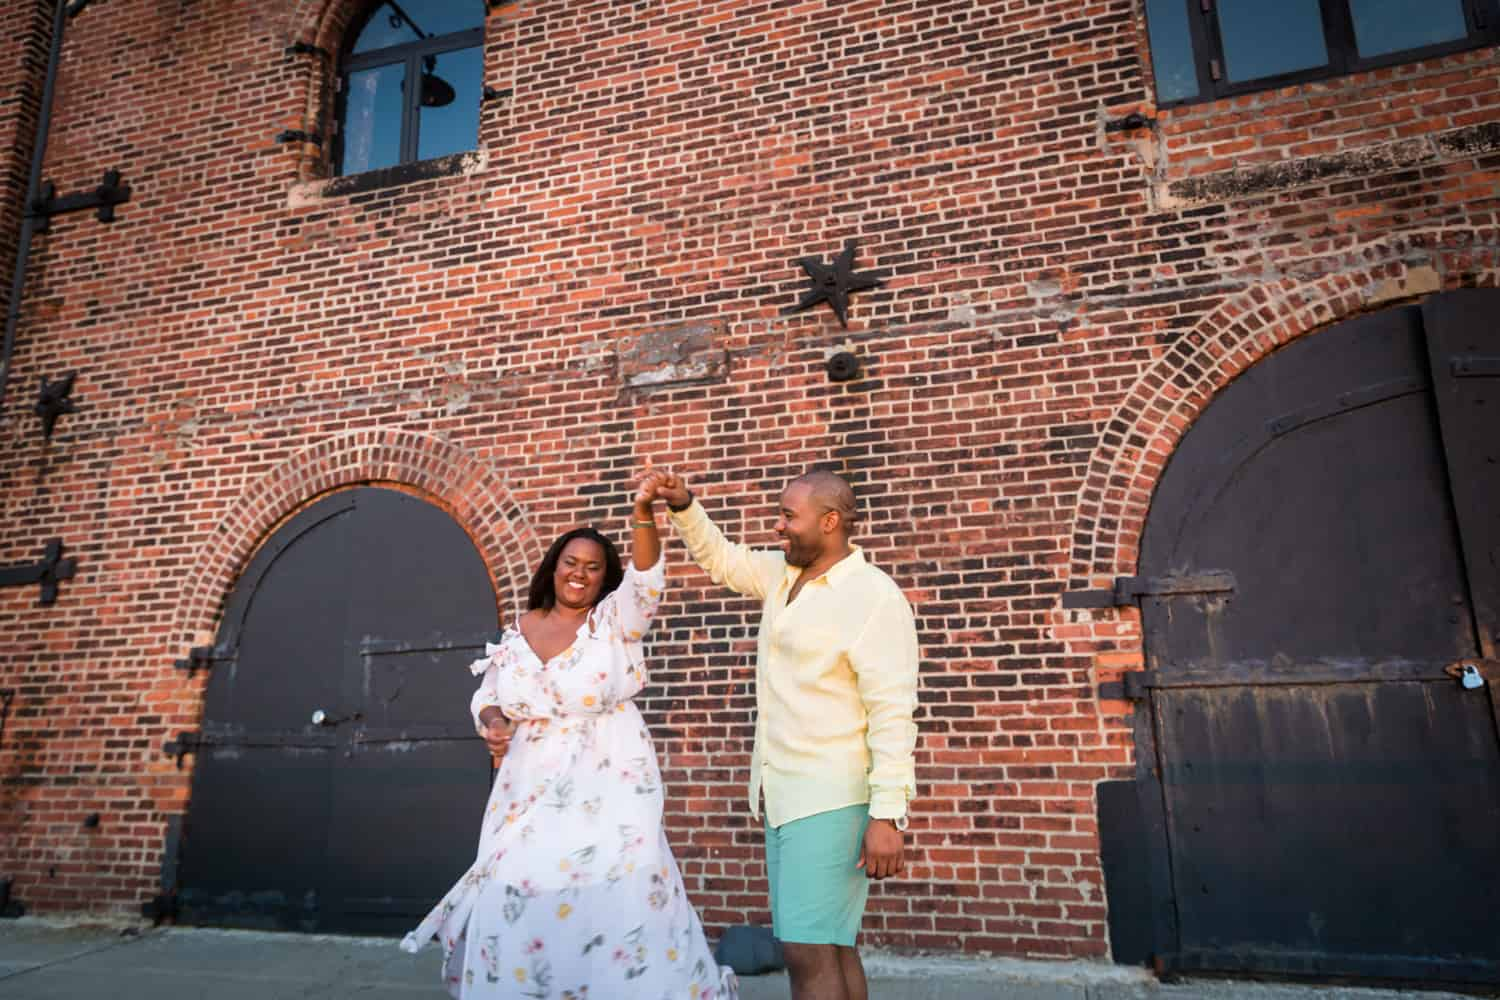 African American couple dancing in front of brick building in Red Hook